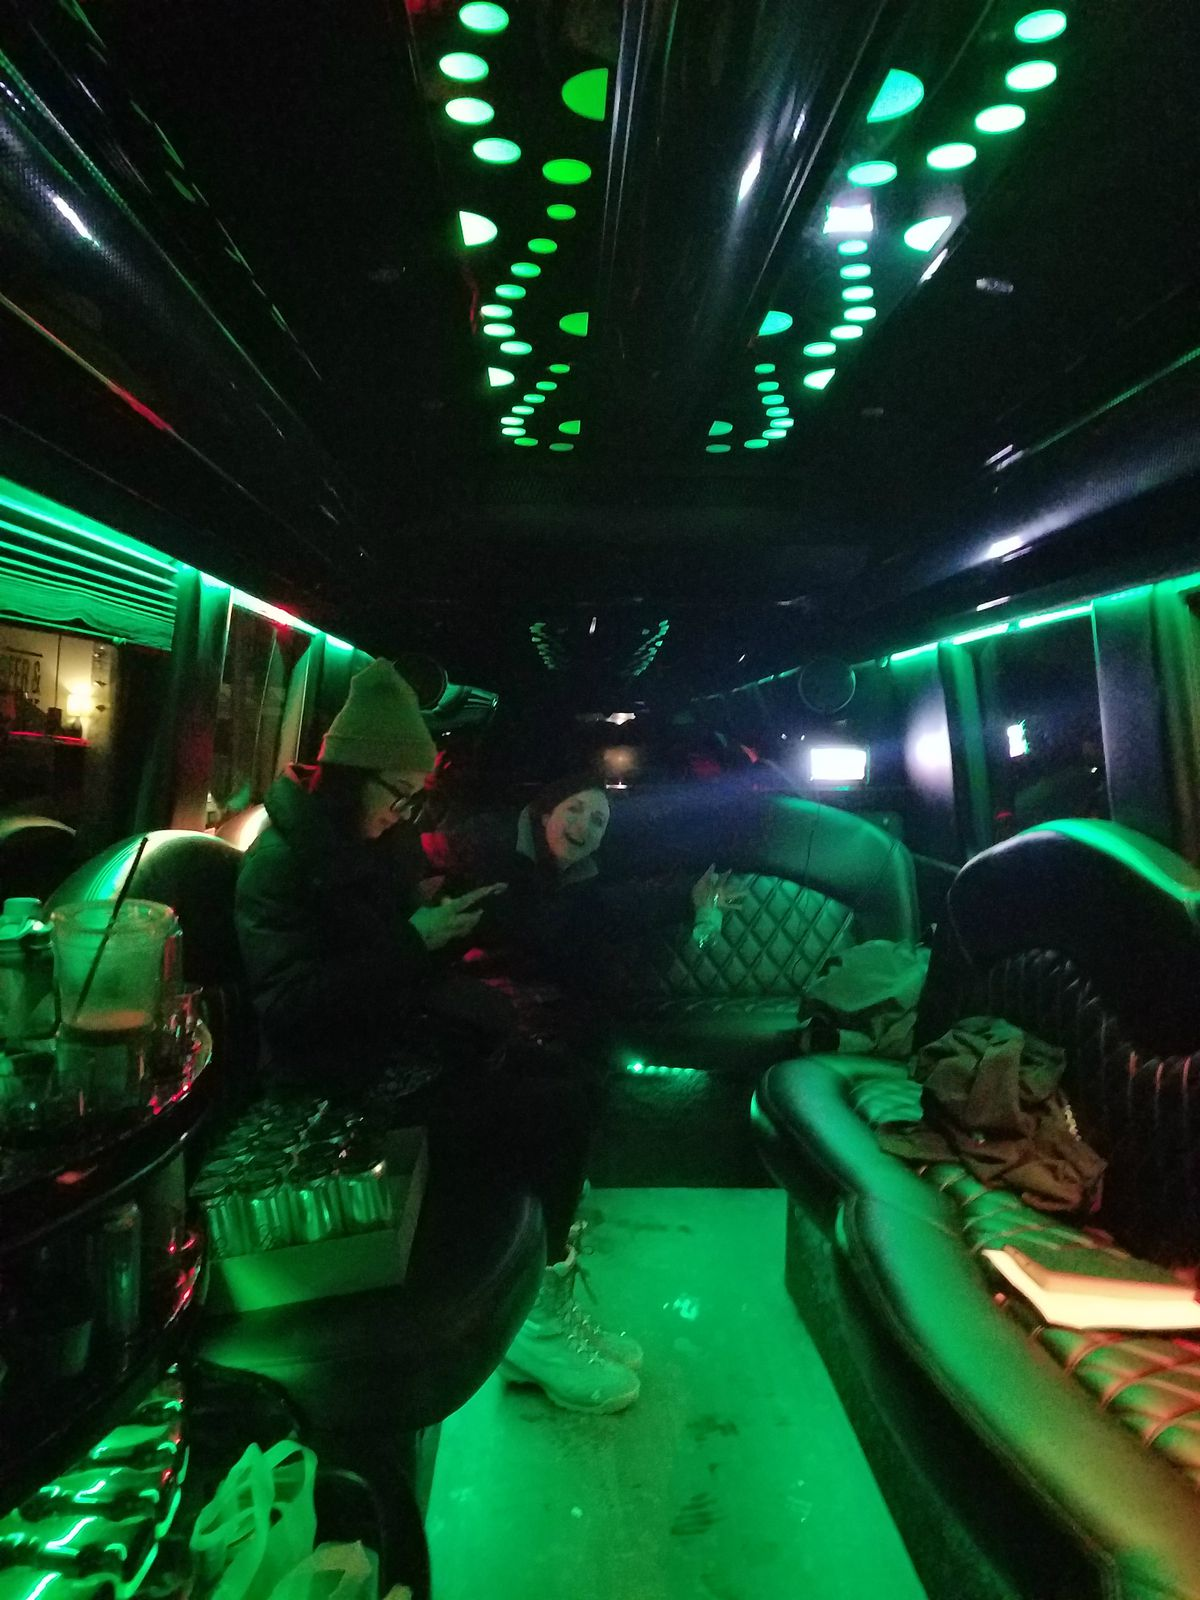 A beer hall crawl in a limo